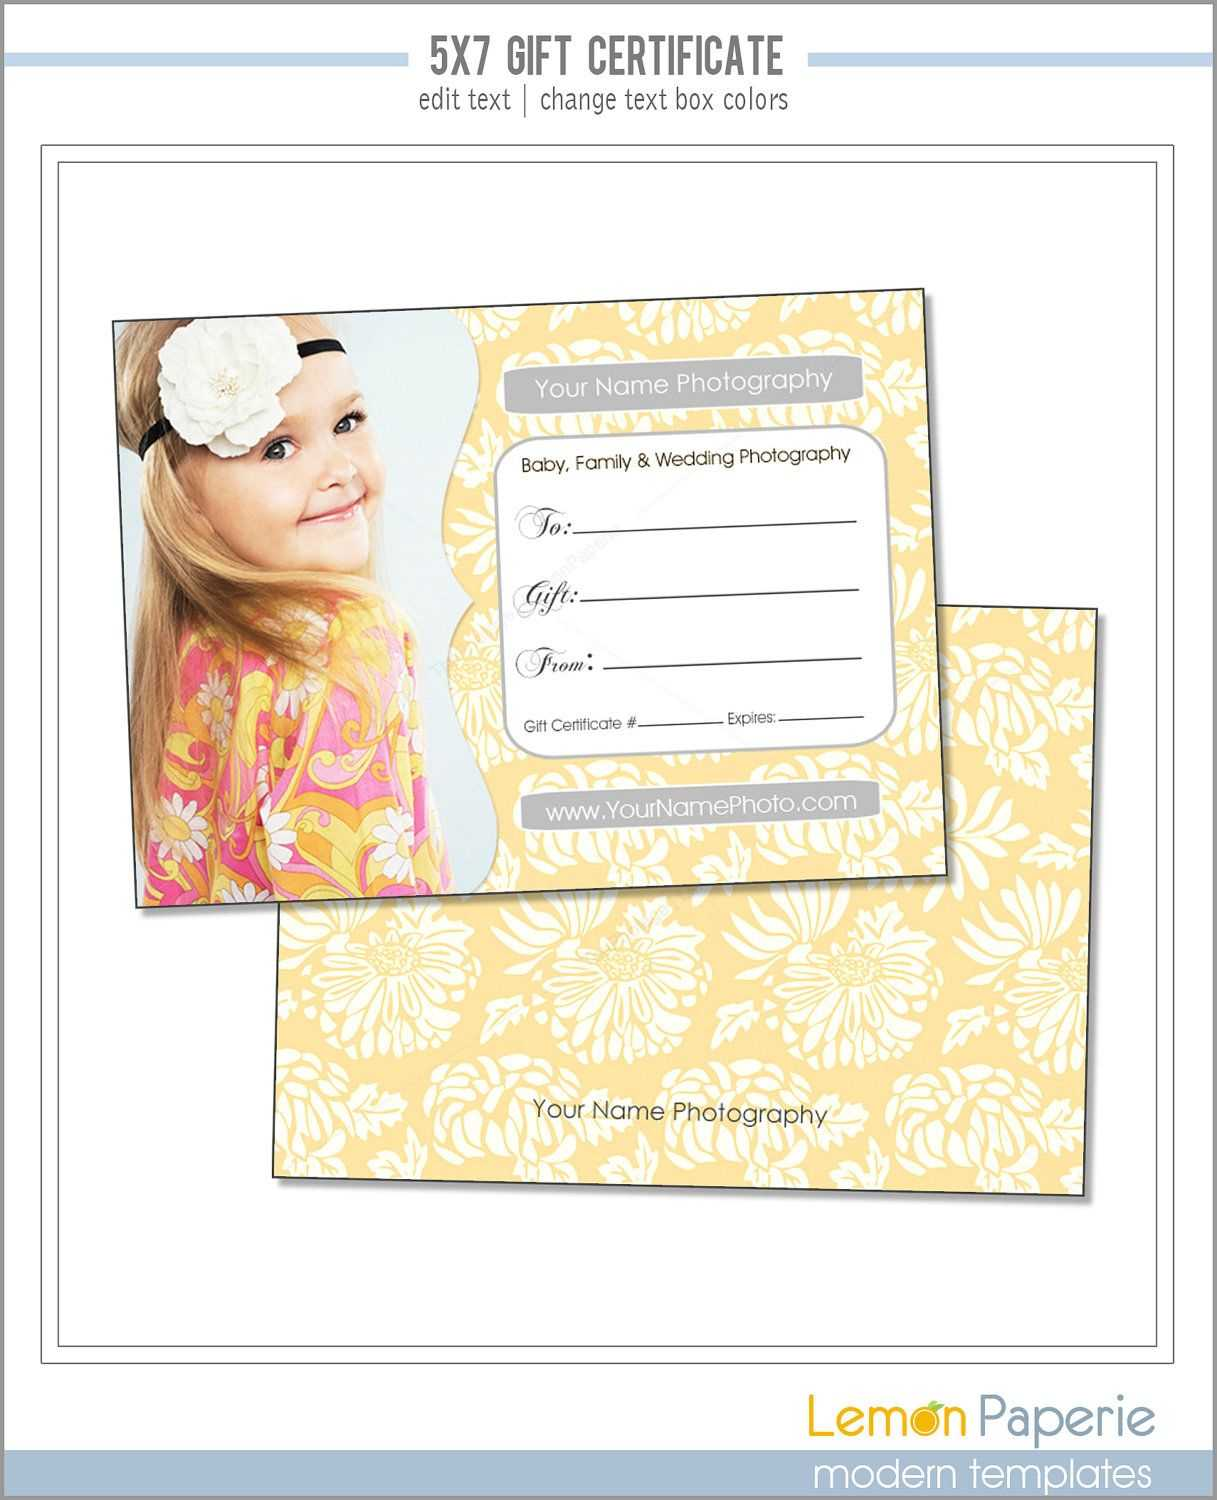 5X7 And 4X6 Gift Certificate Template, Fresh Blossoms, Psd For Gift Certificate Template Photoshop